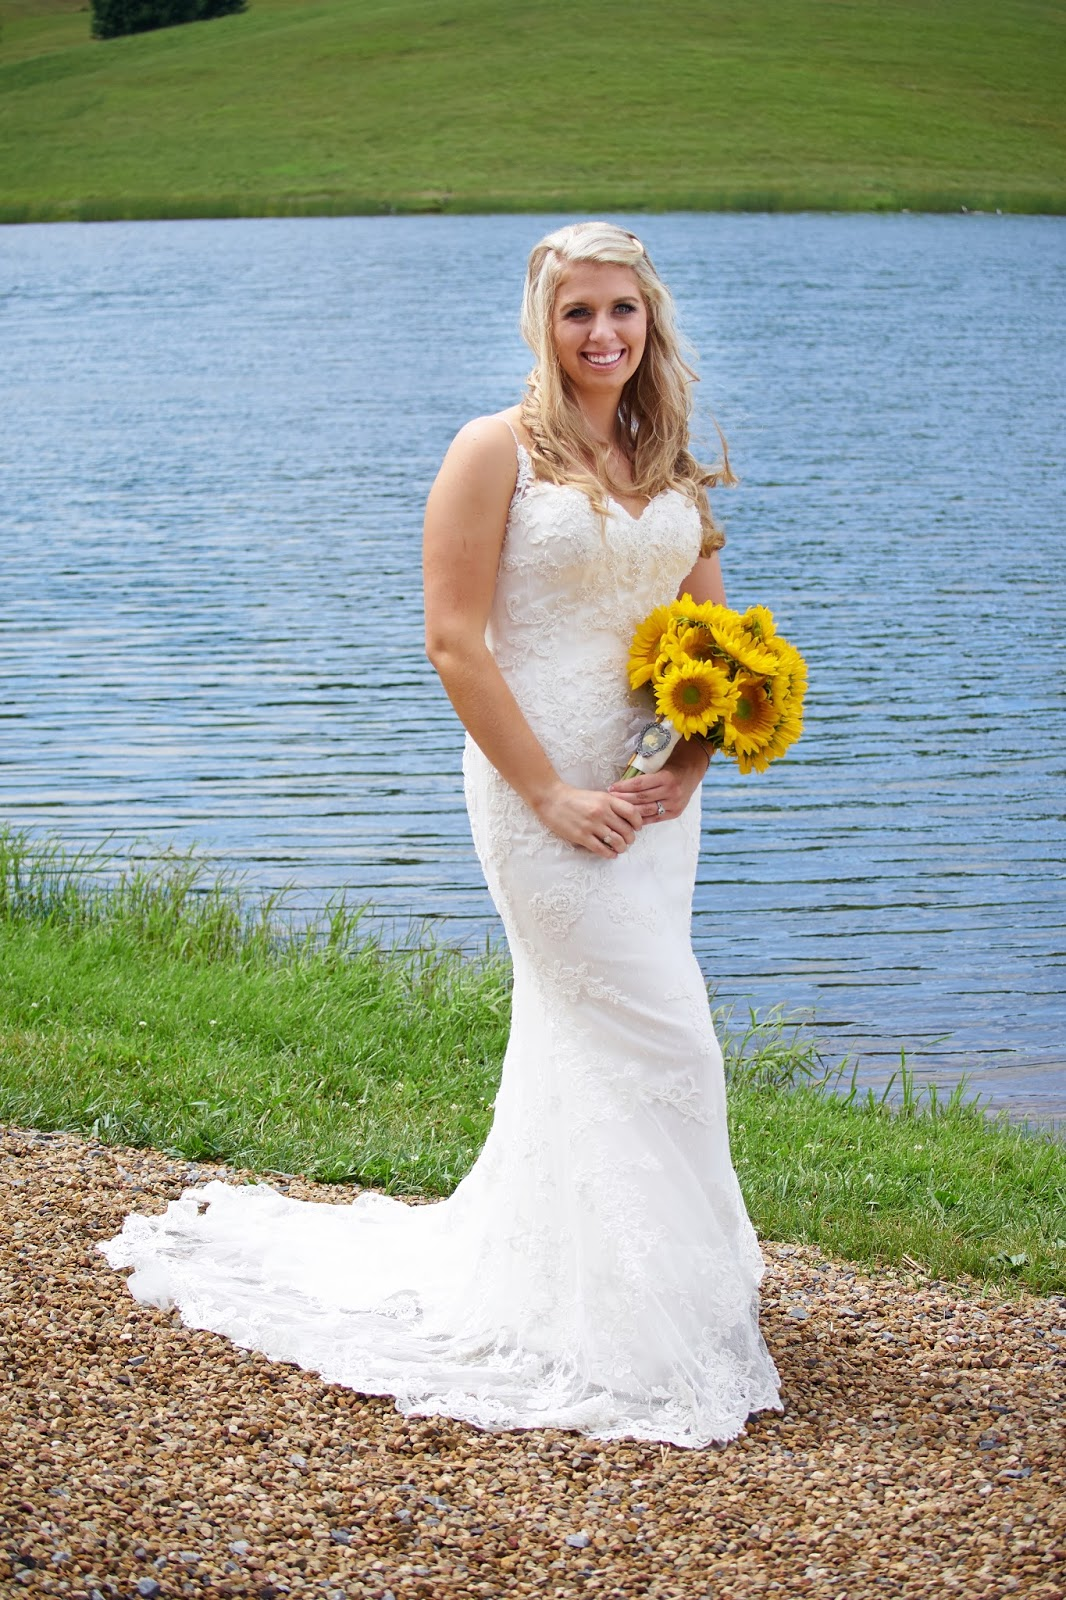 Cable Photography & Video: Brooke Estep & Jeremiah Tolley - Wedding ...